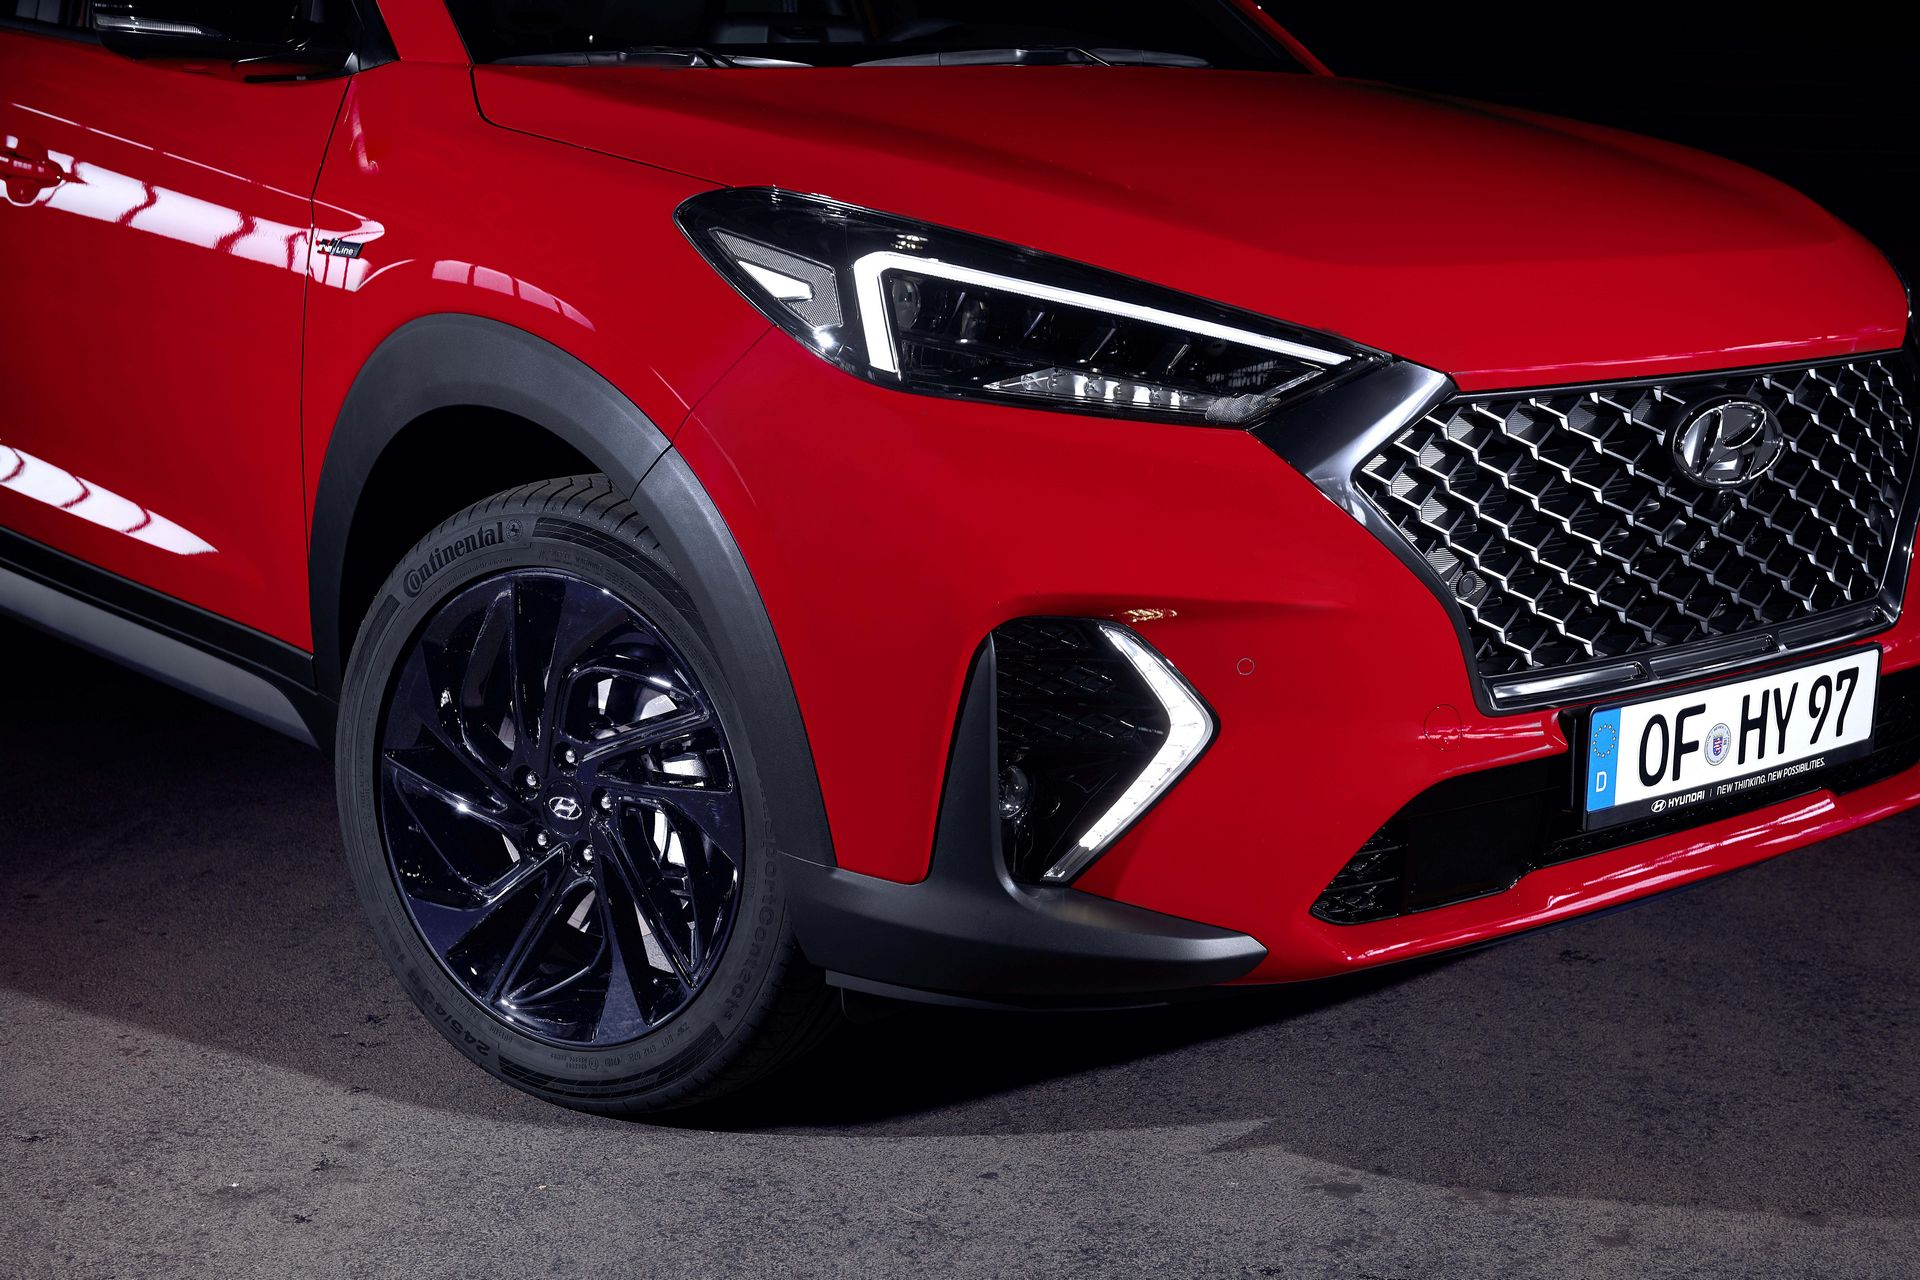 2020 Hyundai Tucson Colors.2020 Hyundai Tucson Refreshed With New Colors Repackaged